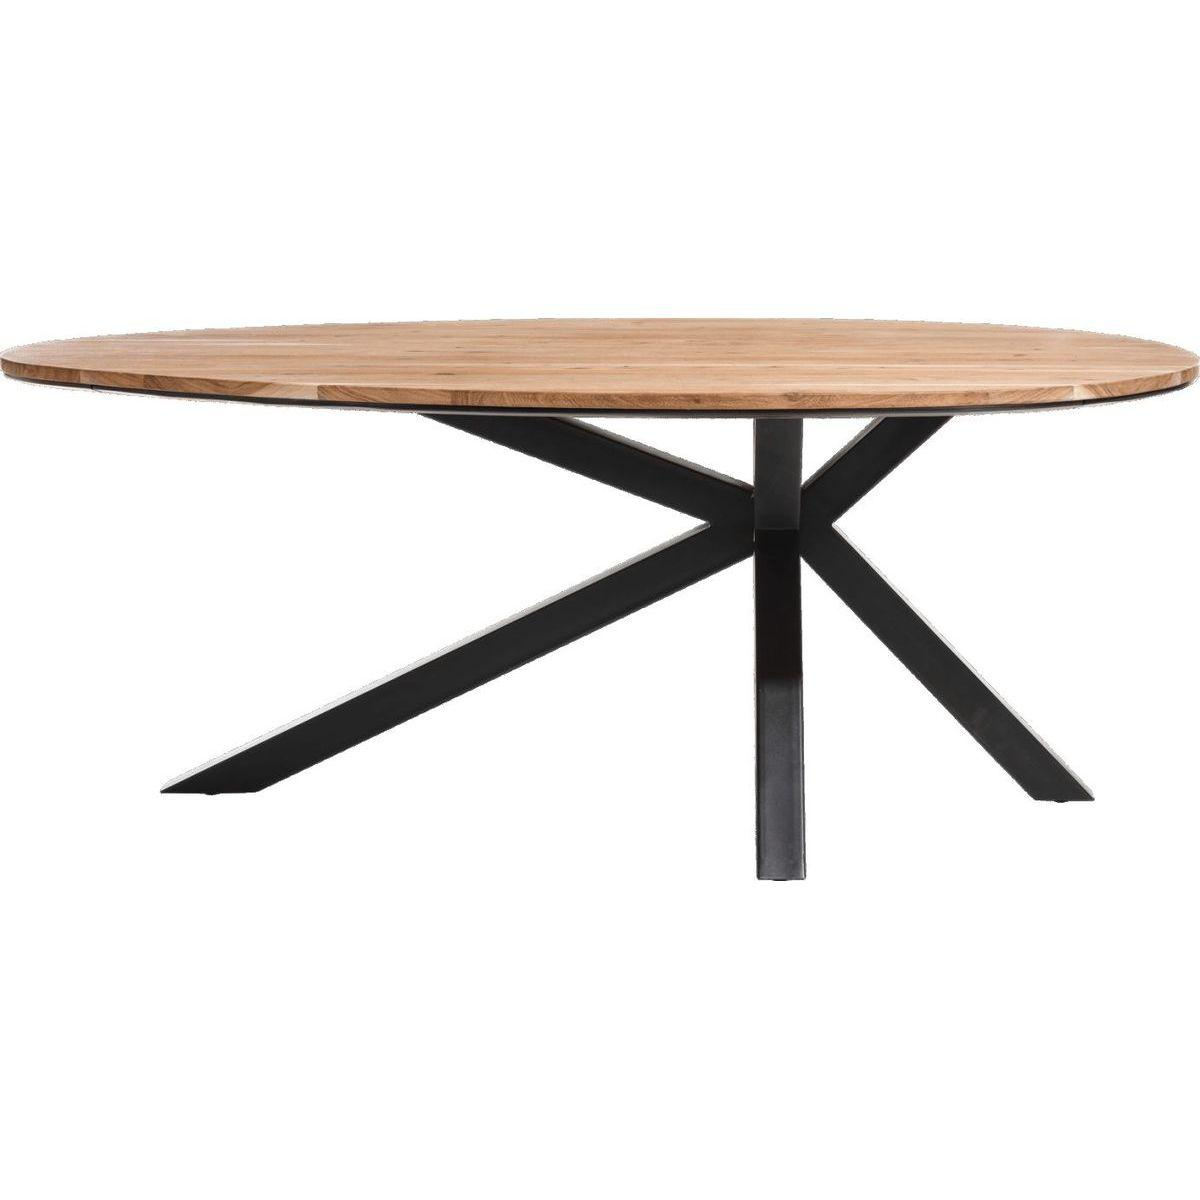 Table ovale COLOMBO Xooon bois Kikar smoked 200x120cm